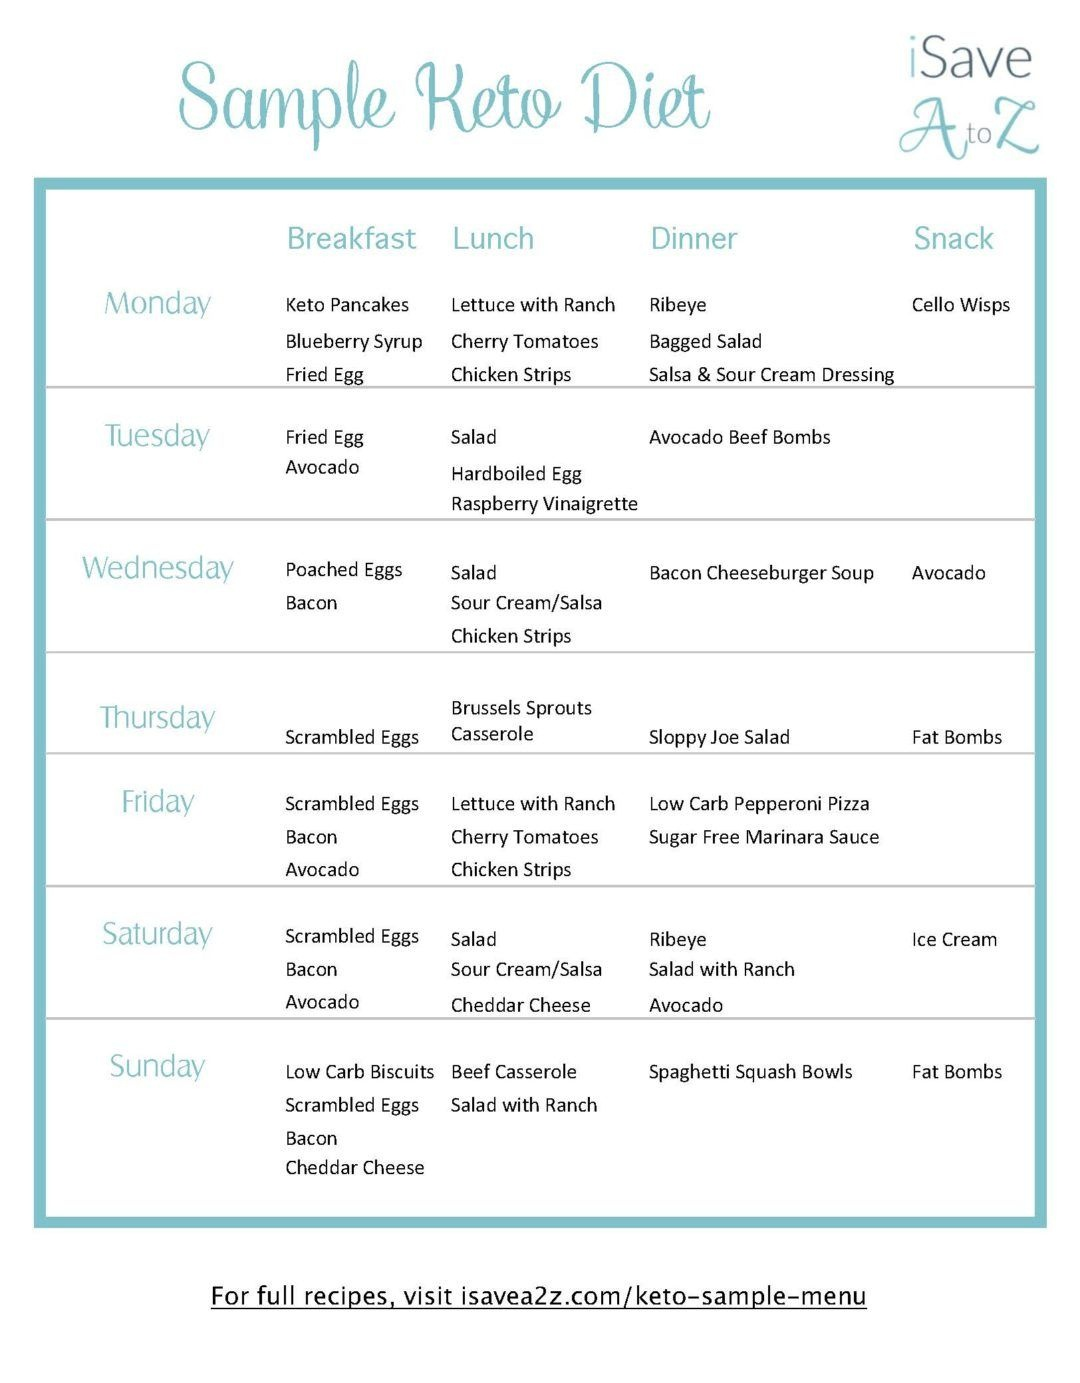 Grab This Printable 7 Day Keto Sample Menu Plan | Keto | Ketogenic - Free Printable Low Carb Diet Plans